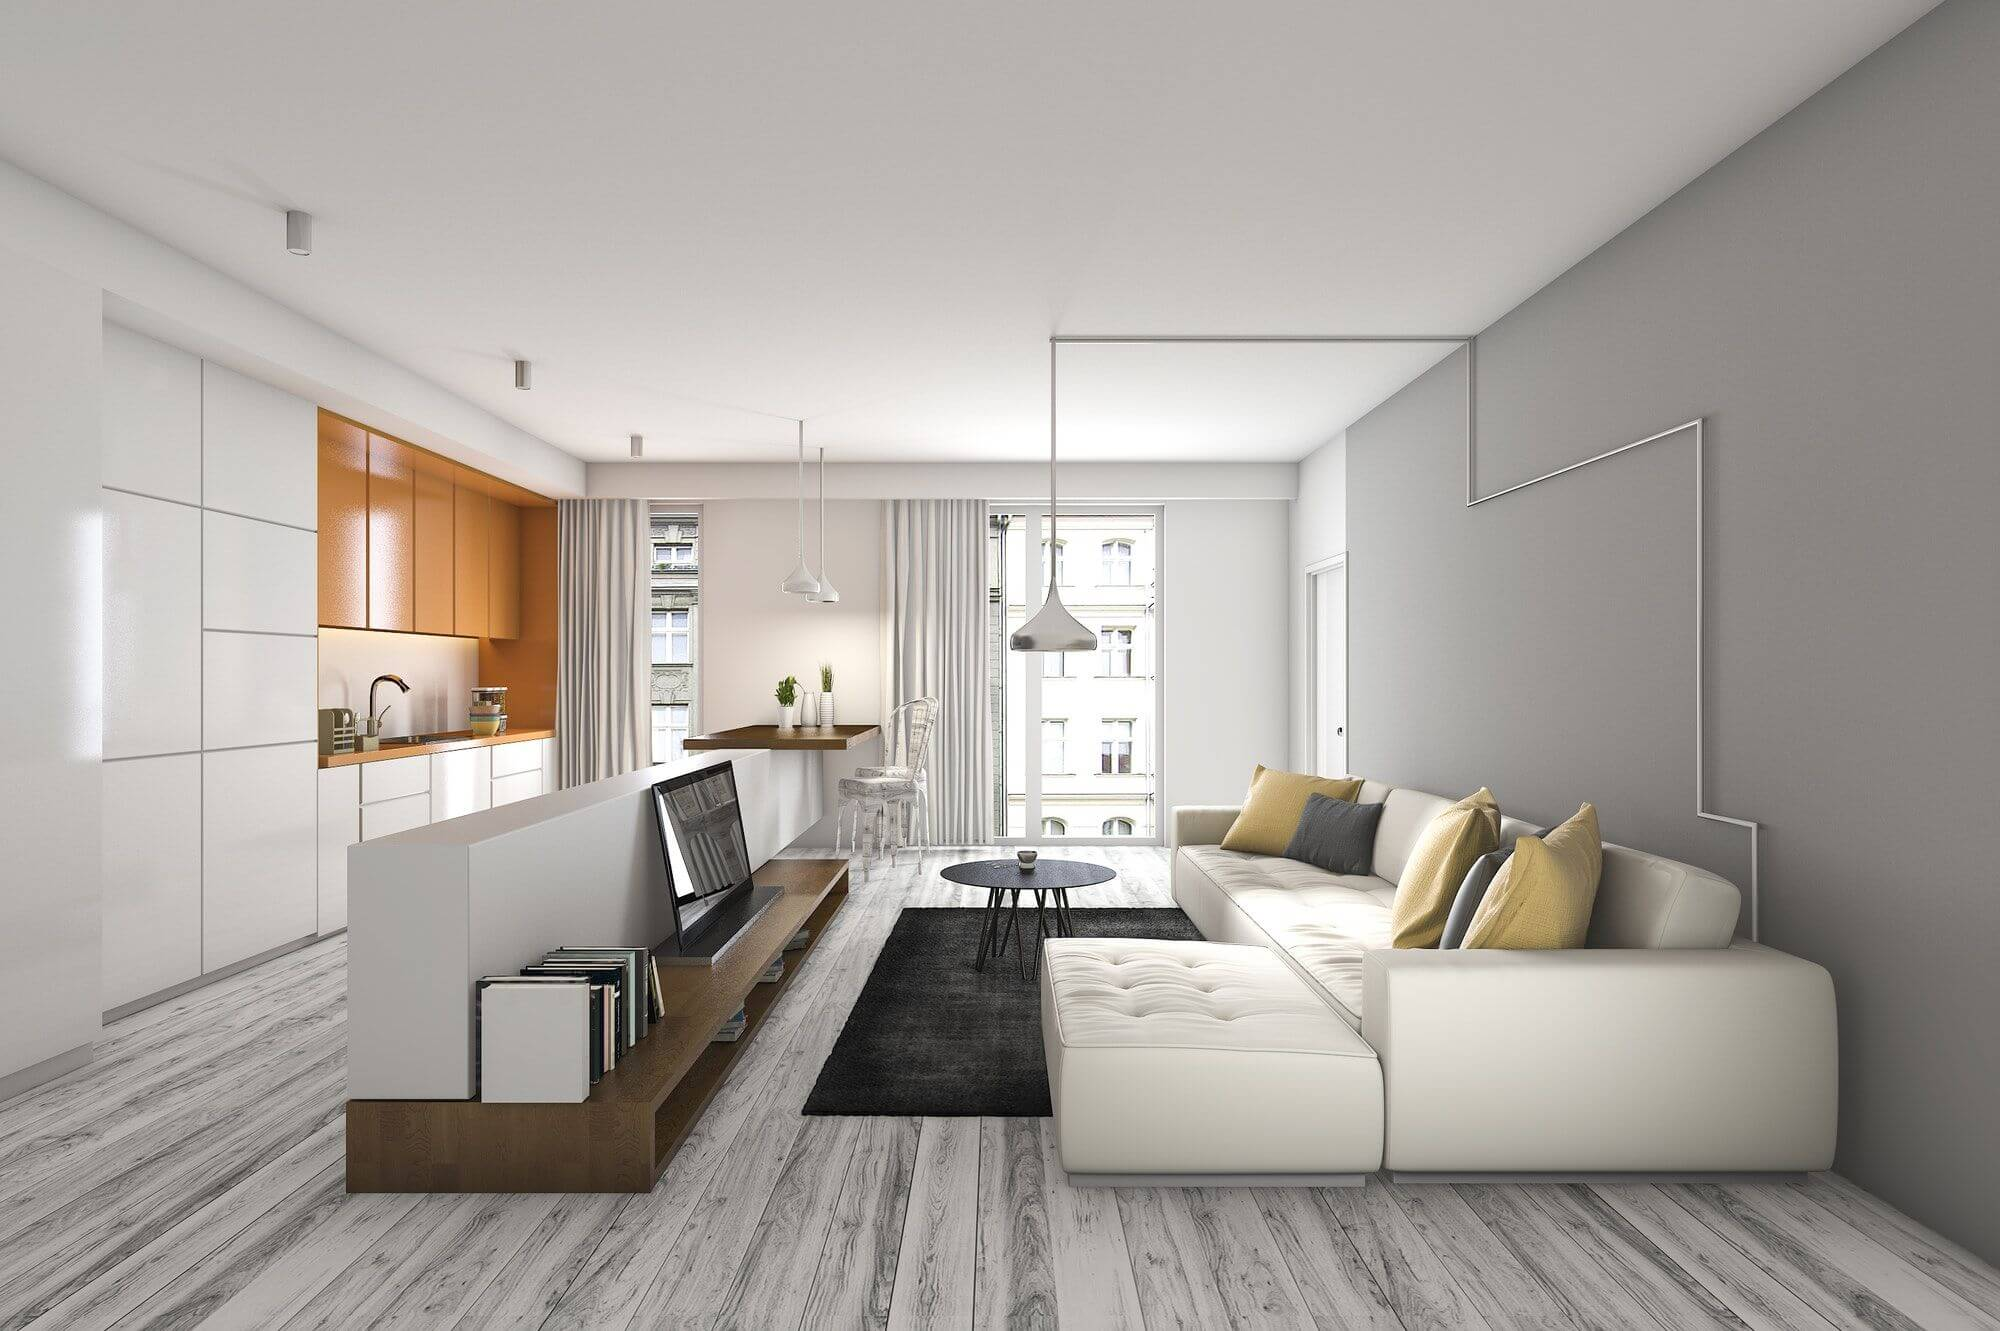 3d rendering living room with sofa and tv near kitchen bar